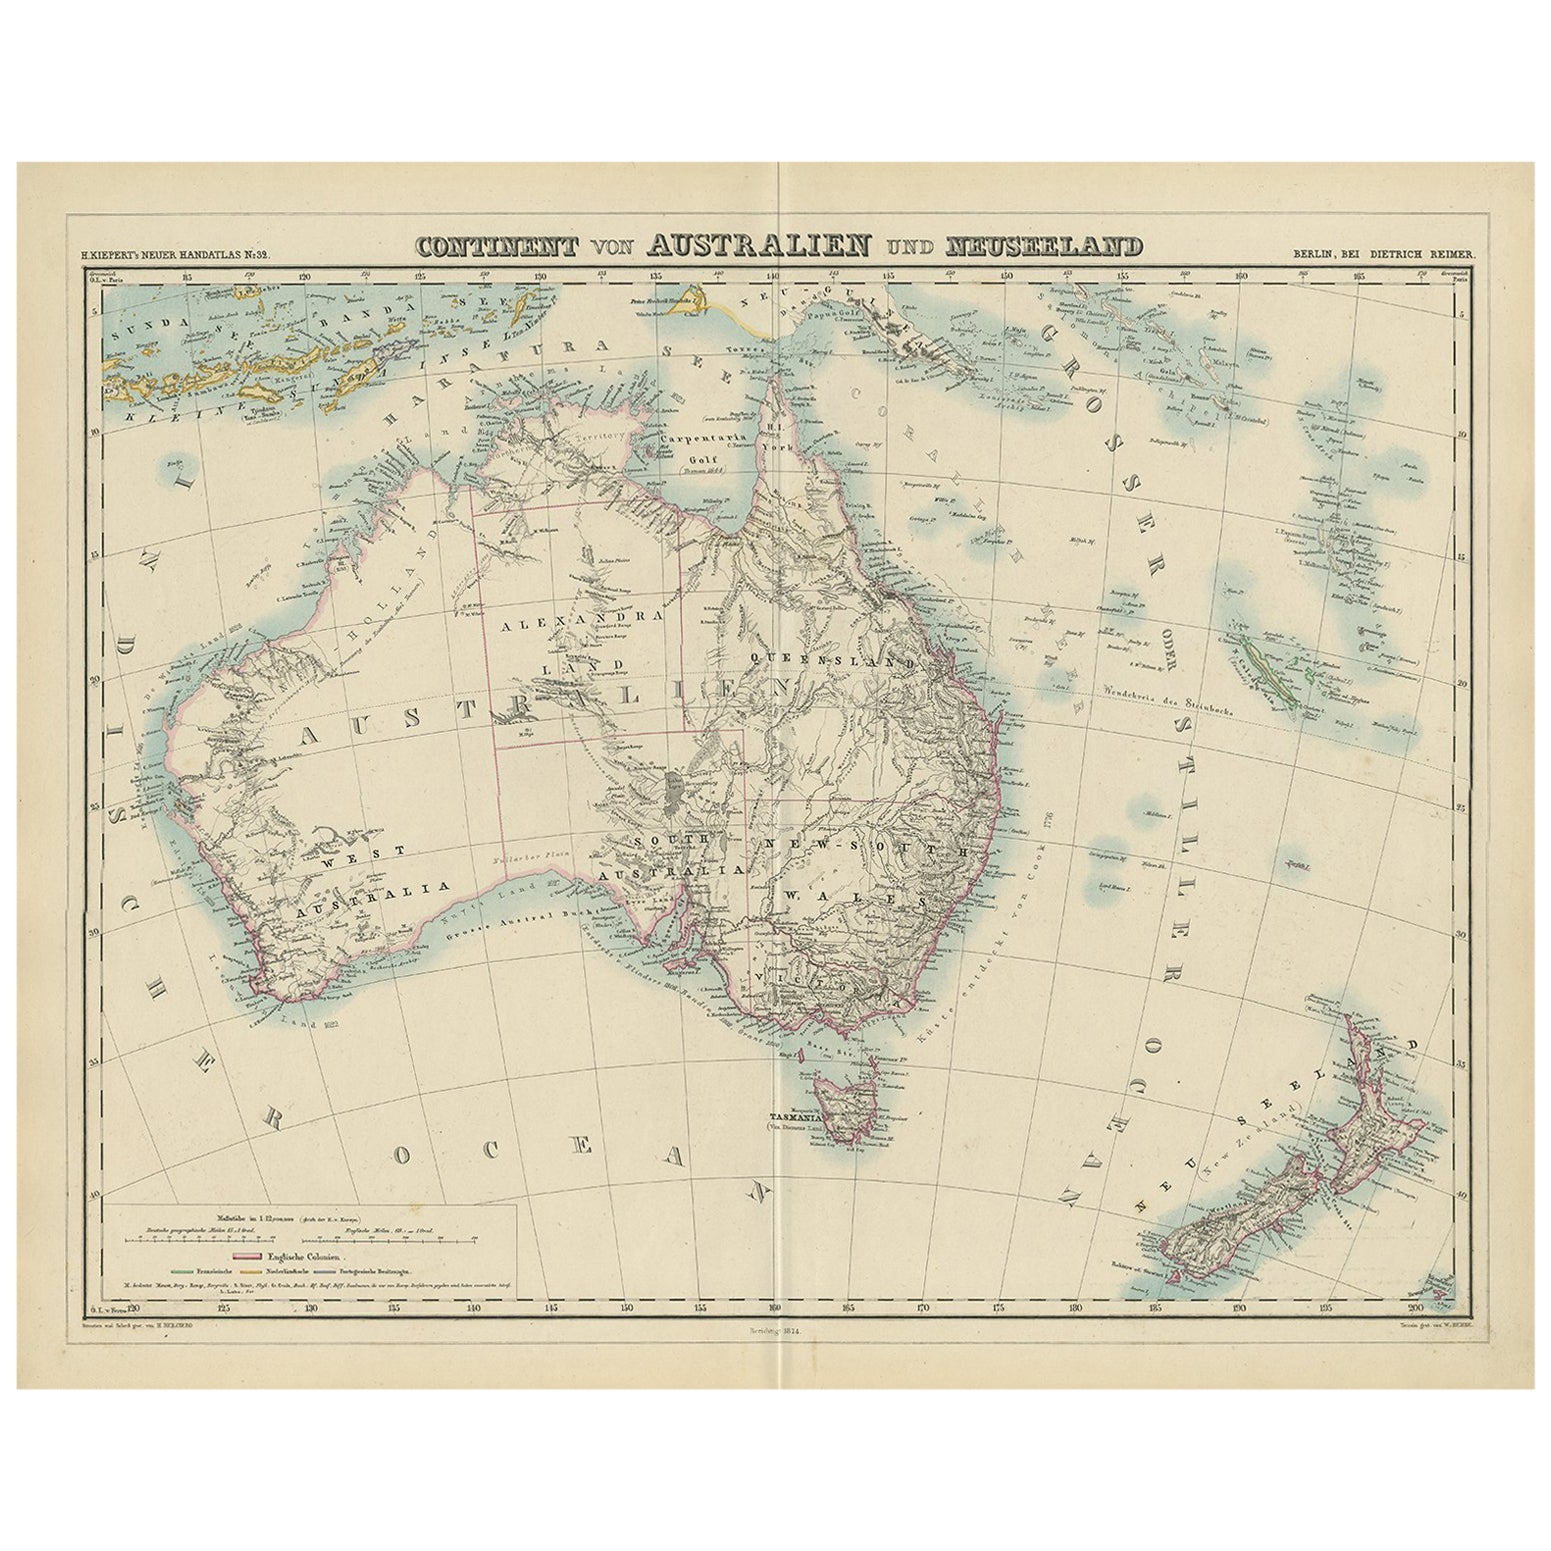 Map Of New Zealand Australia.Antique Map Of Australia And New Zealand By H Kiepert 1874